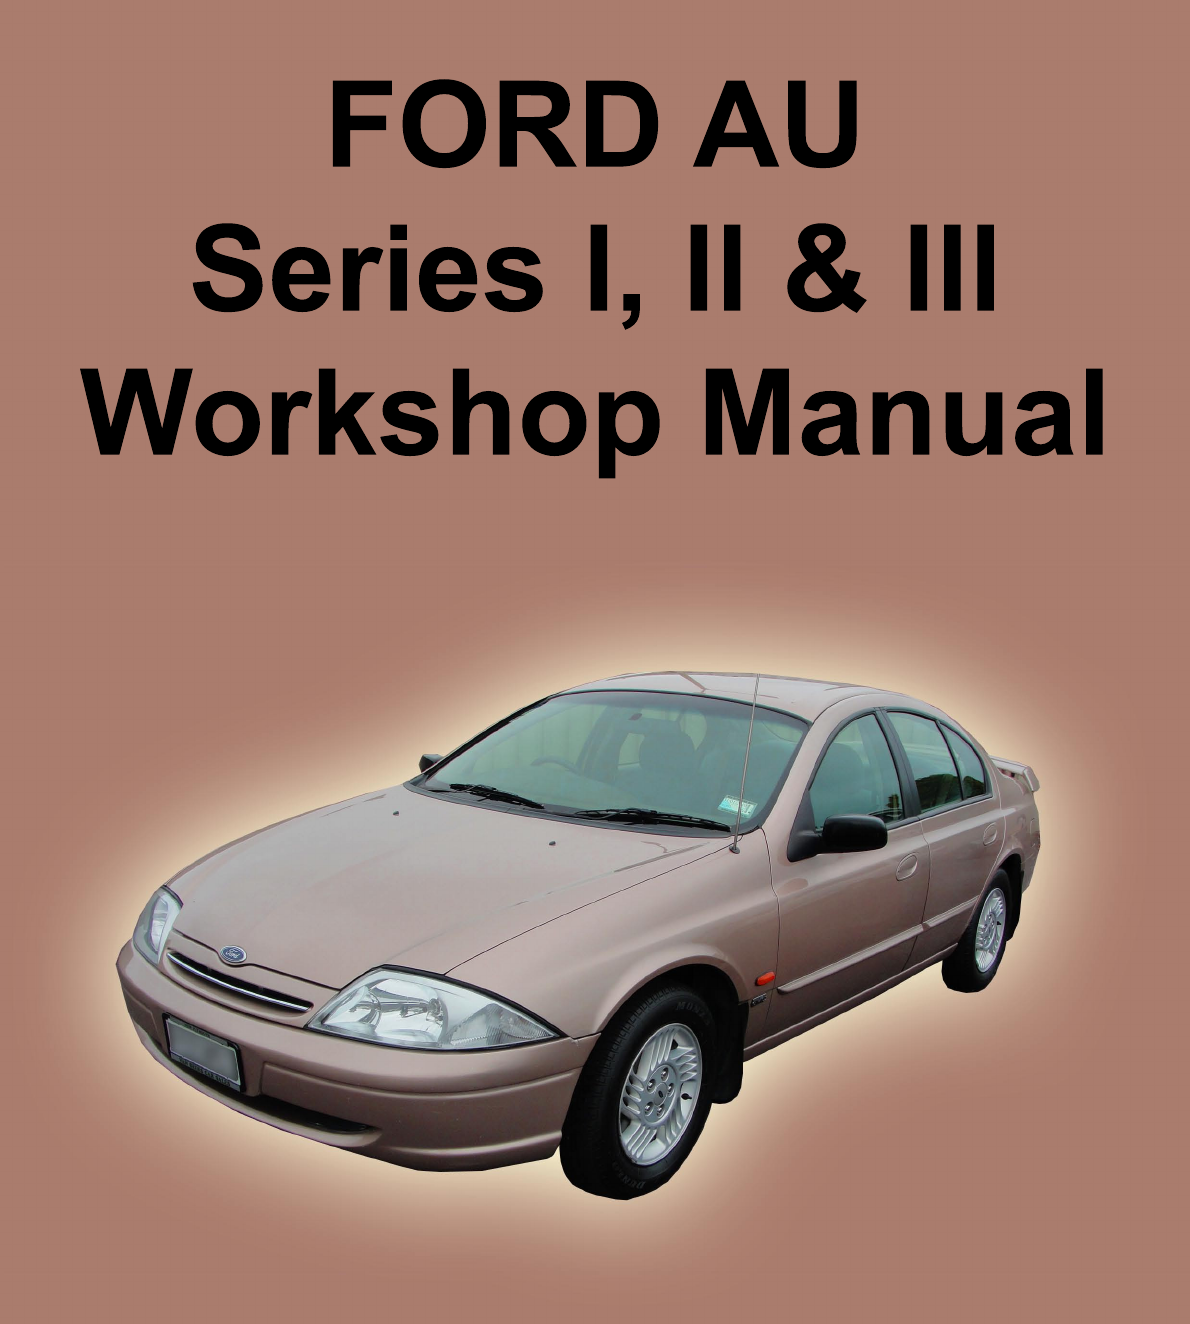 See our other Ford Falcon Manuals: